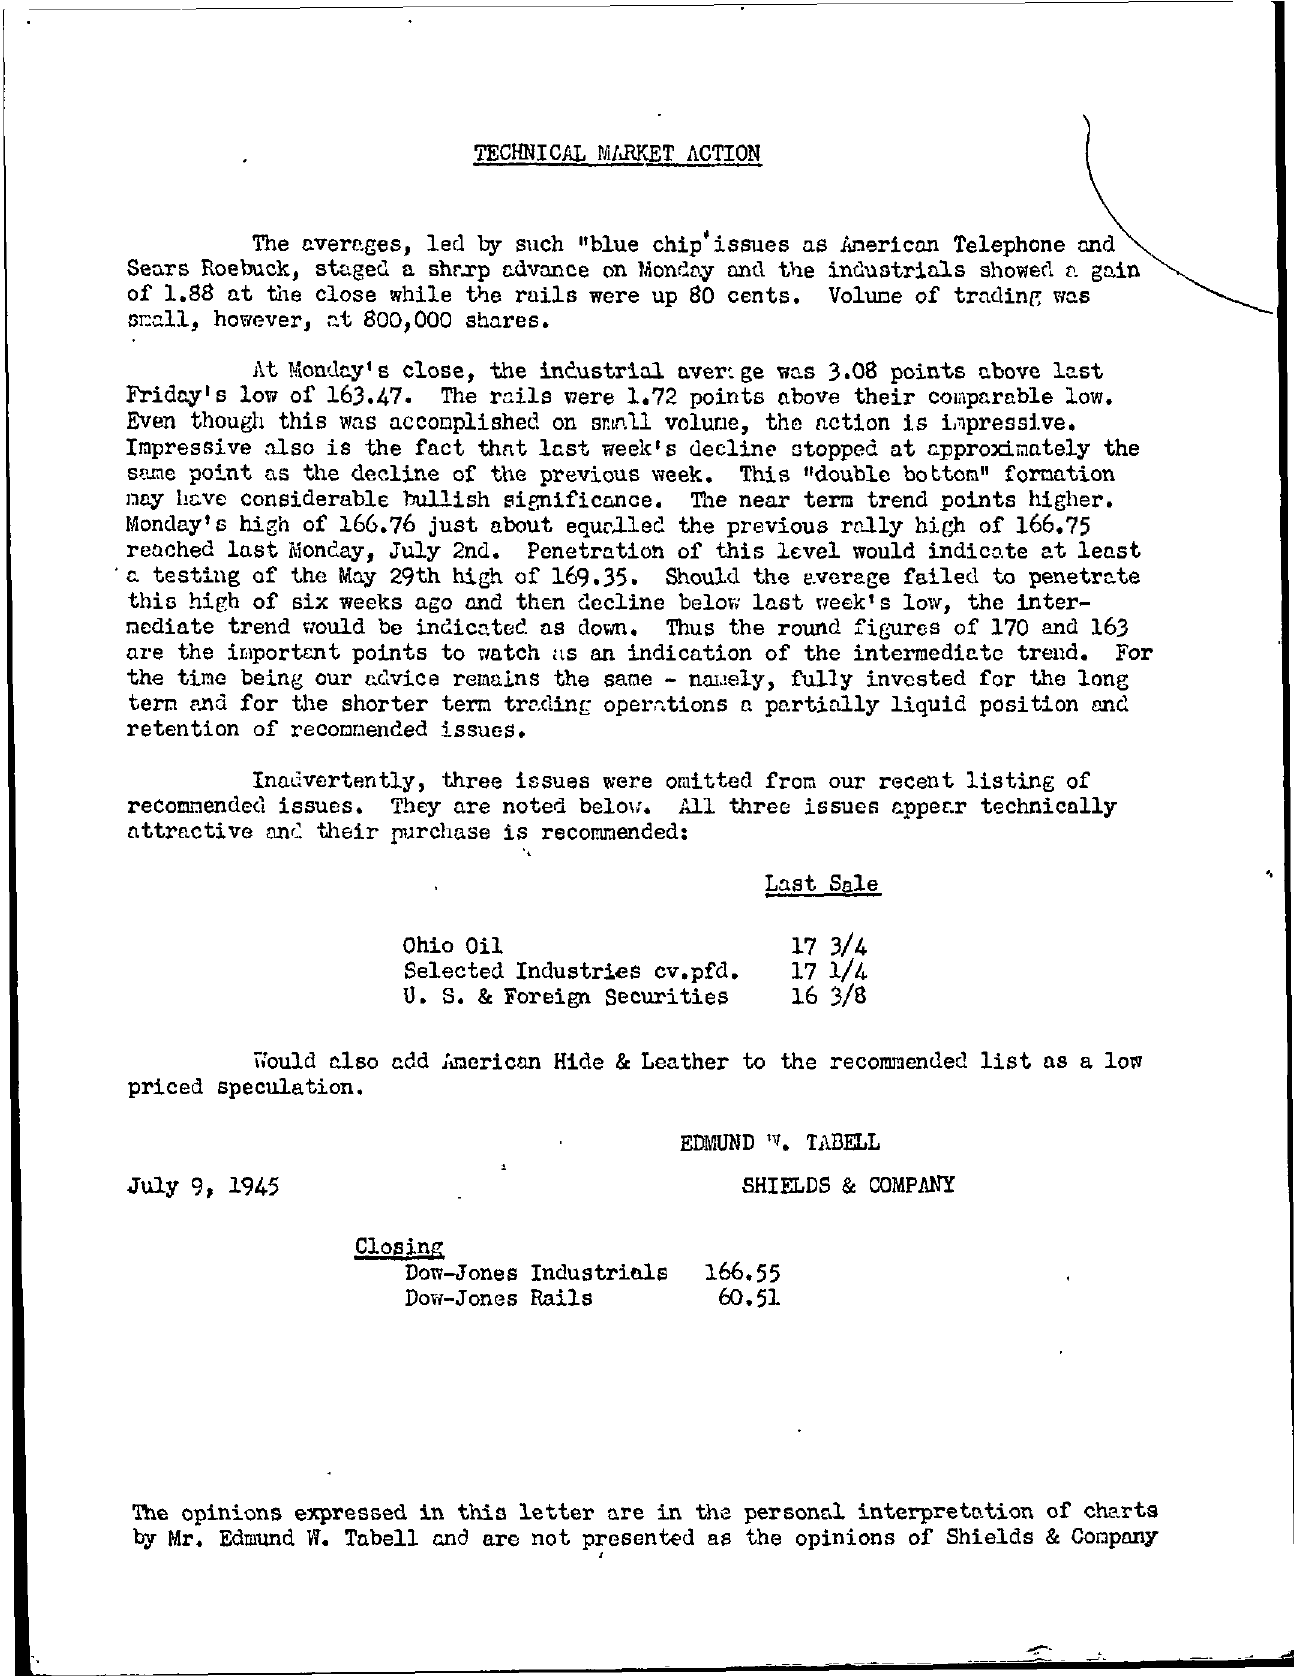 Tabell's Market Letter - July 09, 1945